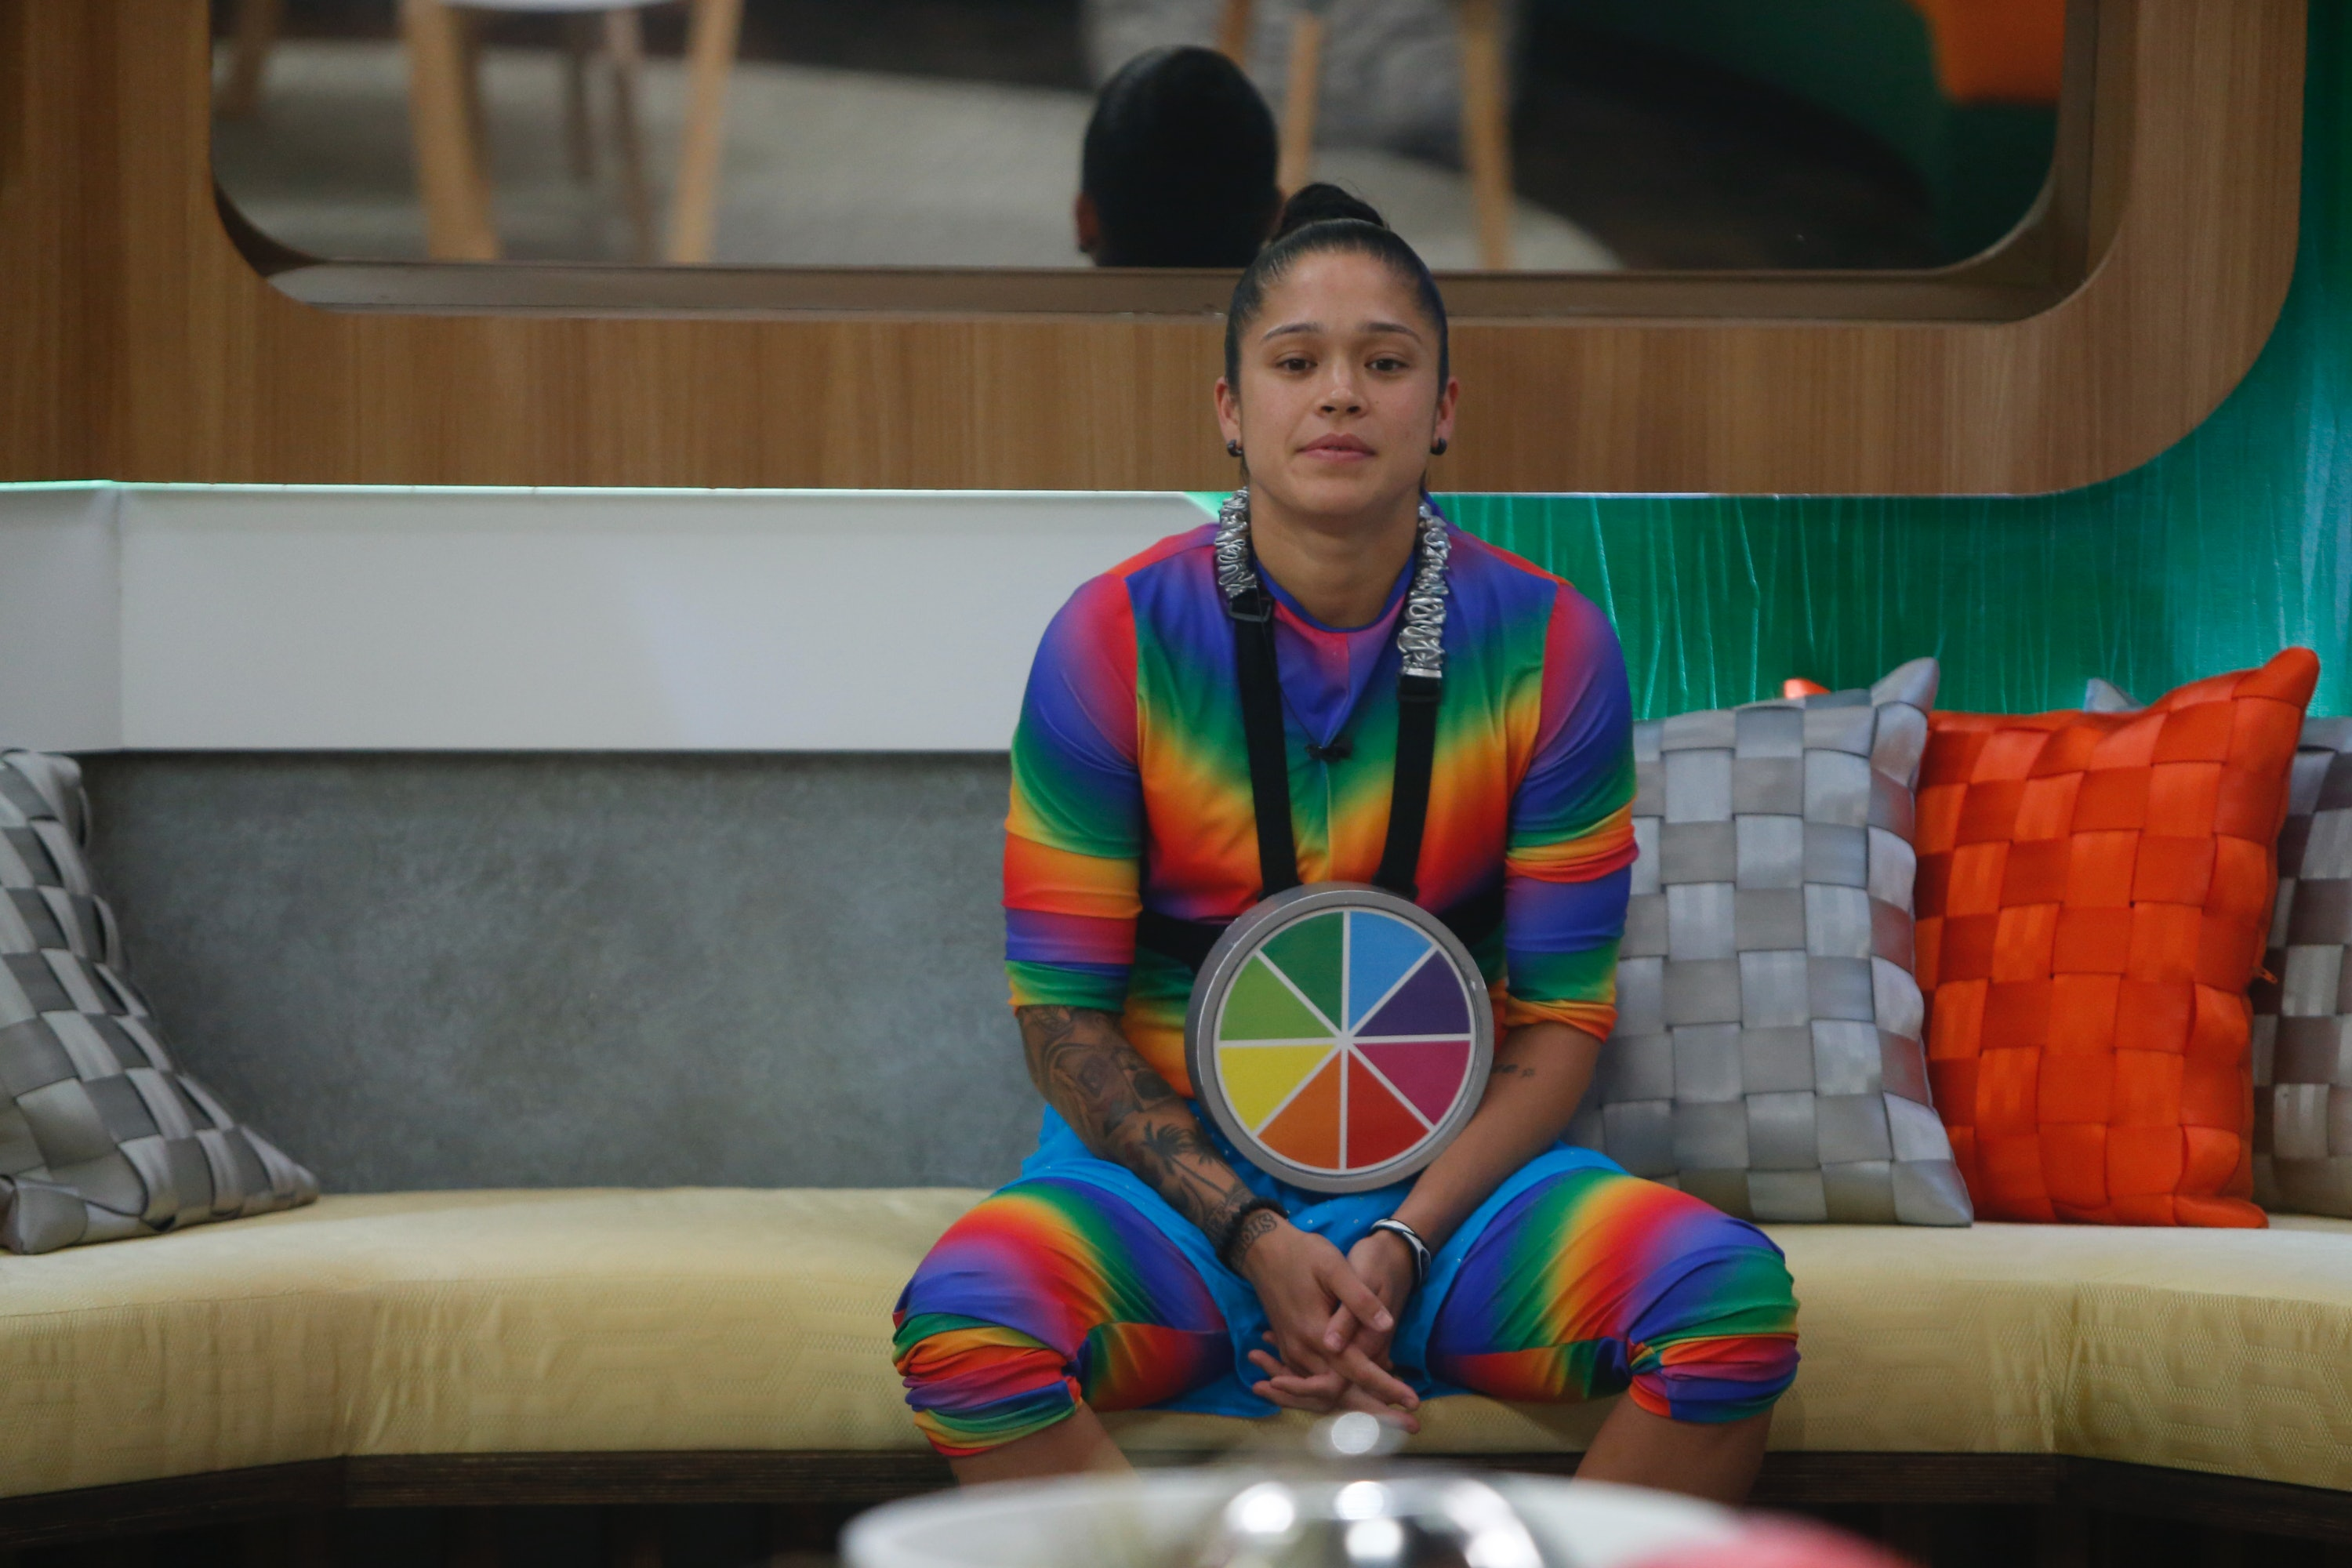 What Football Team Does Kaycee Play For? The 'Big Brother 20